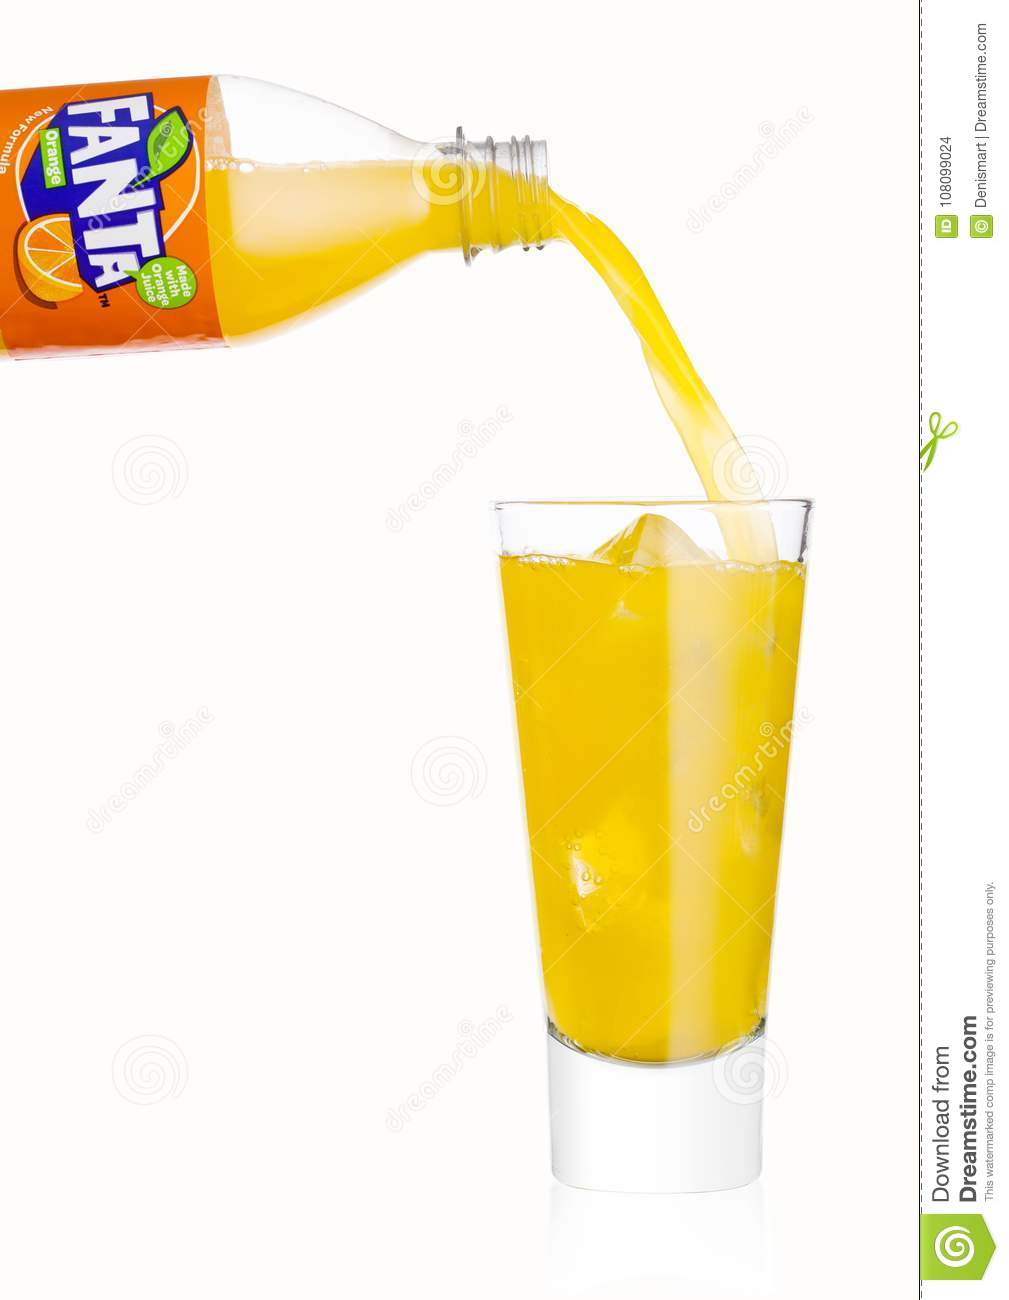 661 Fanta Bottle Photos Free Royalty Free Stock Photos From Dreamstime